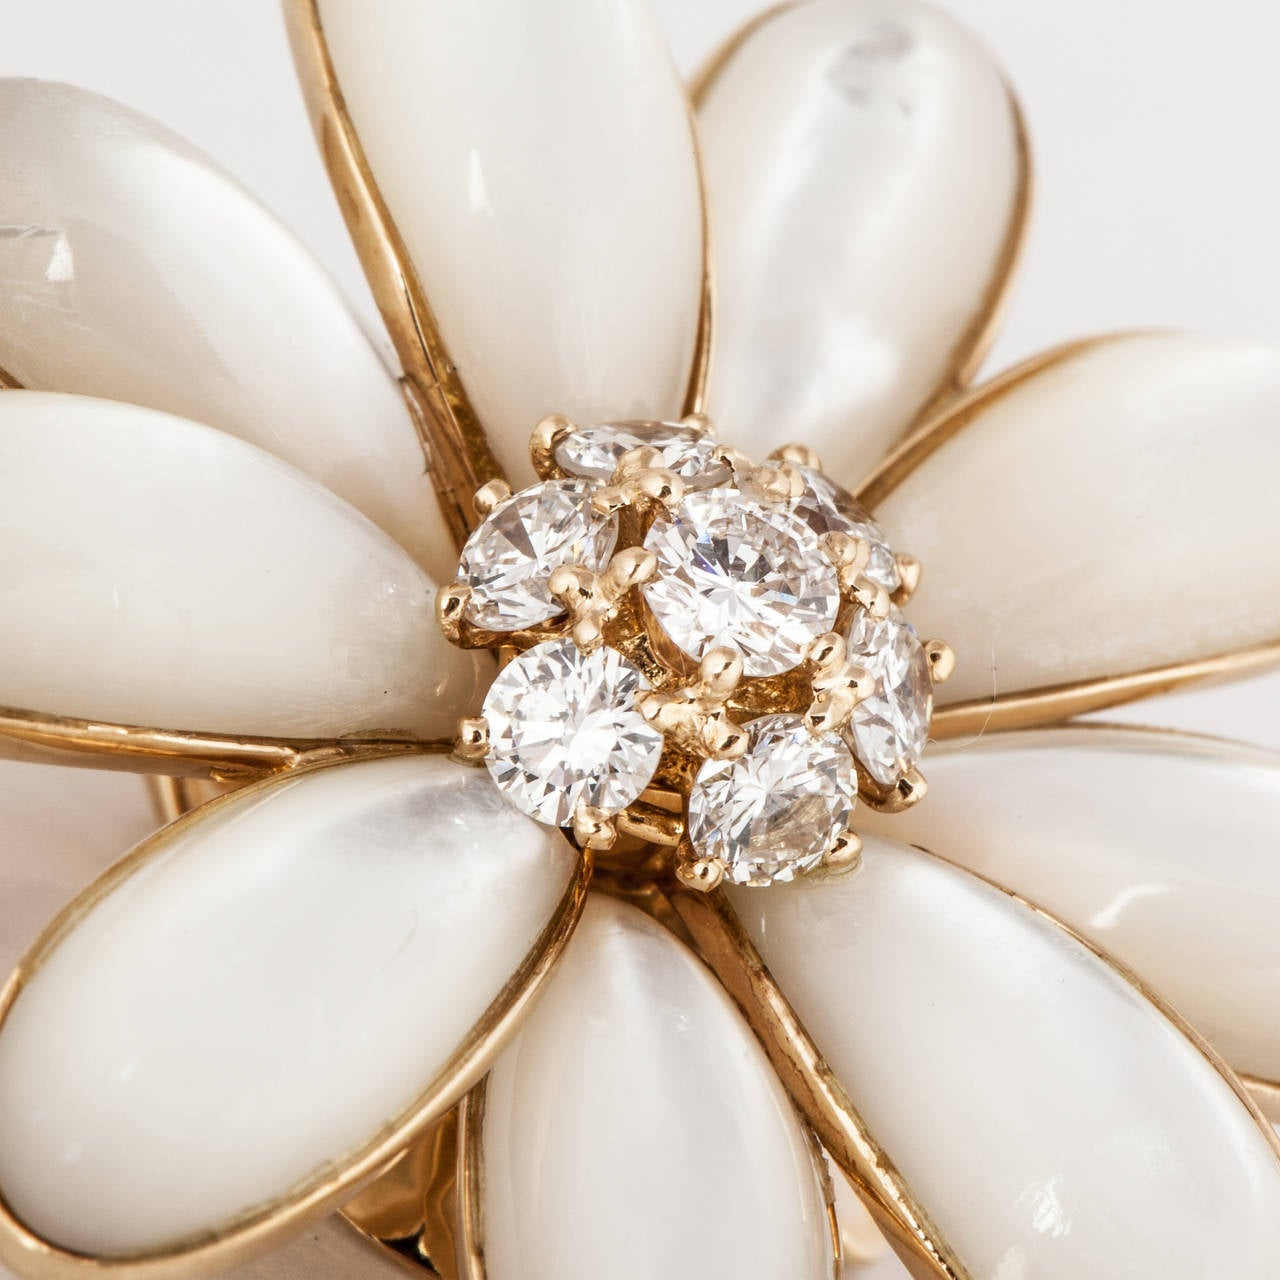 """Yellow gold clip-on earrings made with Mother of Pearl with diamond centers.  Marked """"V.C.A. 750 B3396 P22"""".  There are eighteen (18) mother of pearl petals with fourteen (14) round brilliant cut diamonds totaling 1.50 carats.  They are F-G in color"""